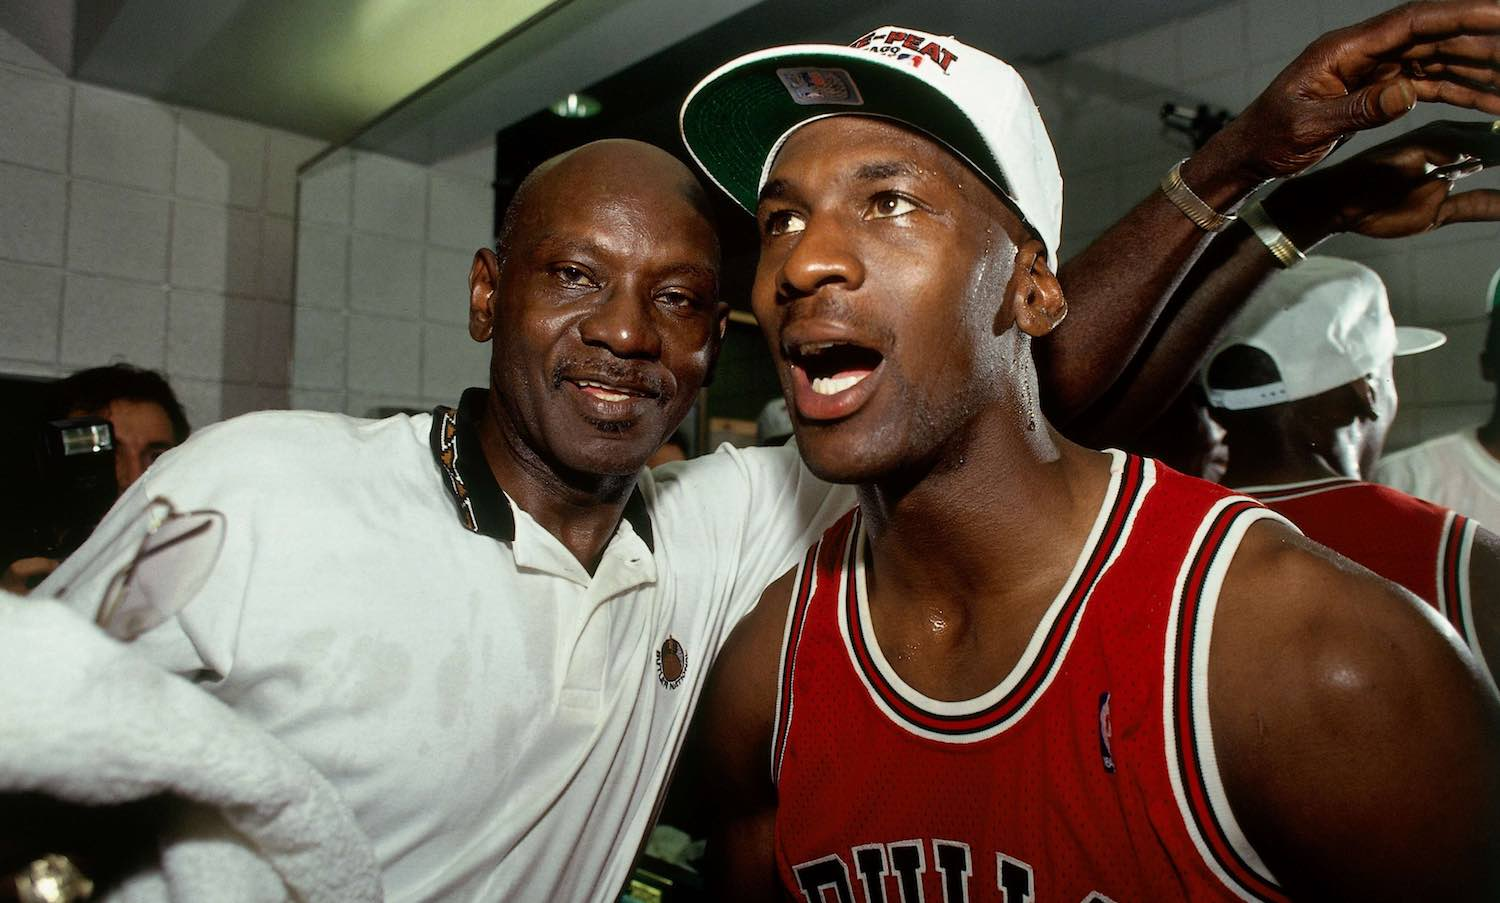 'The last dance', la docuserie de Michael Jordan llega a Netflix